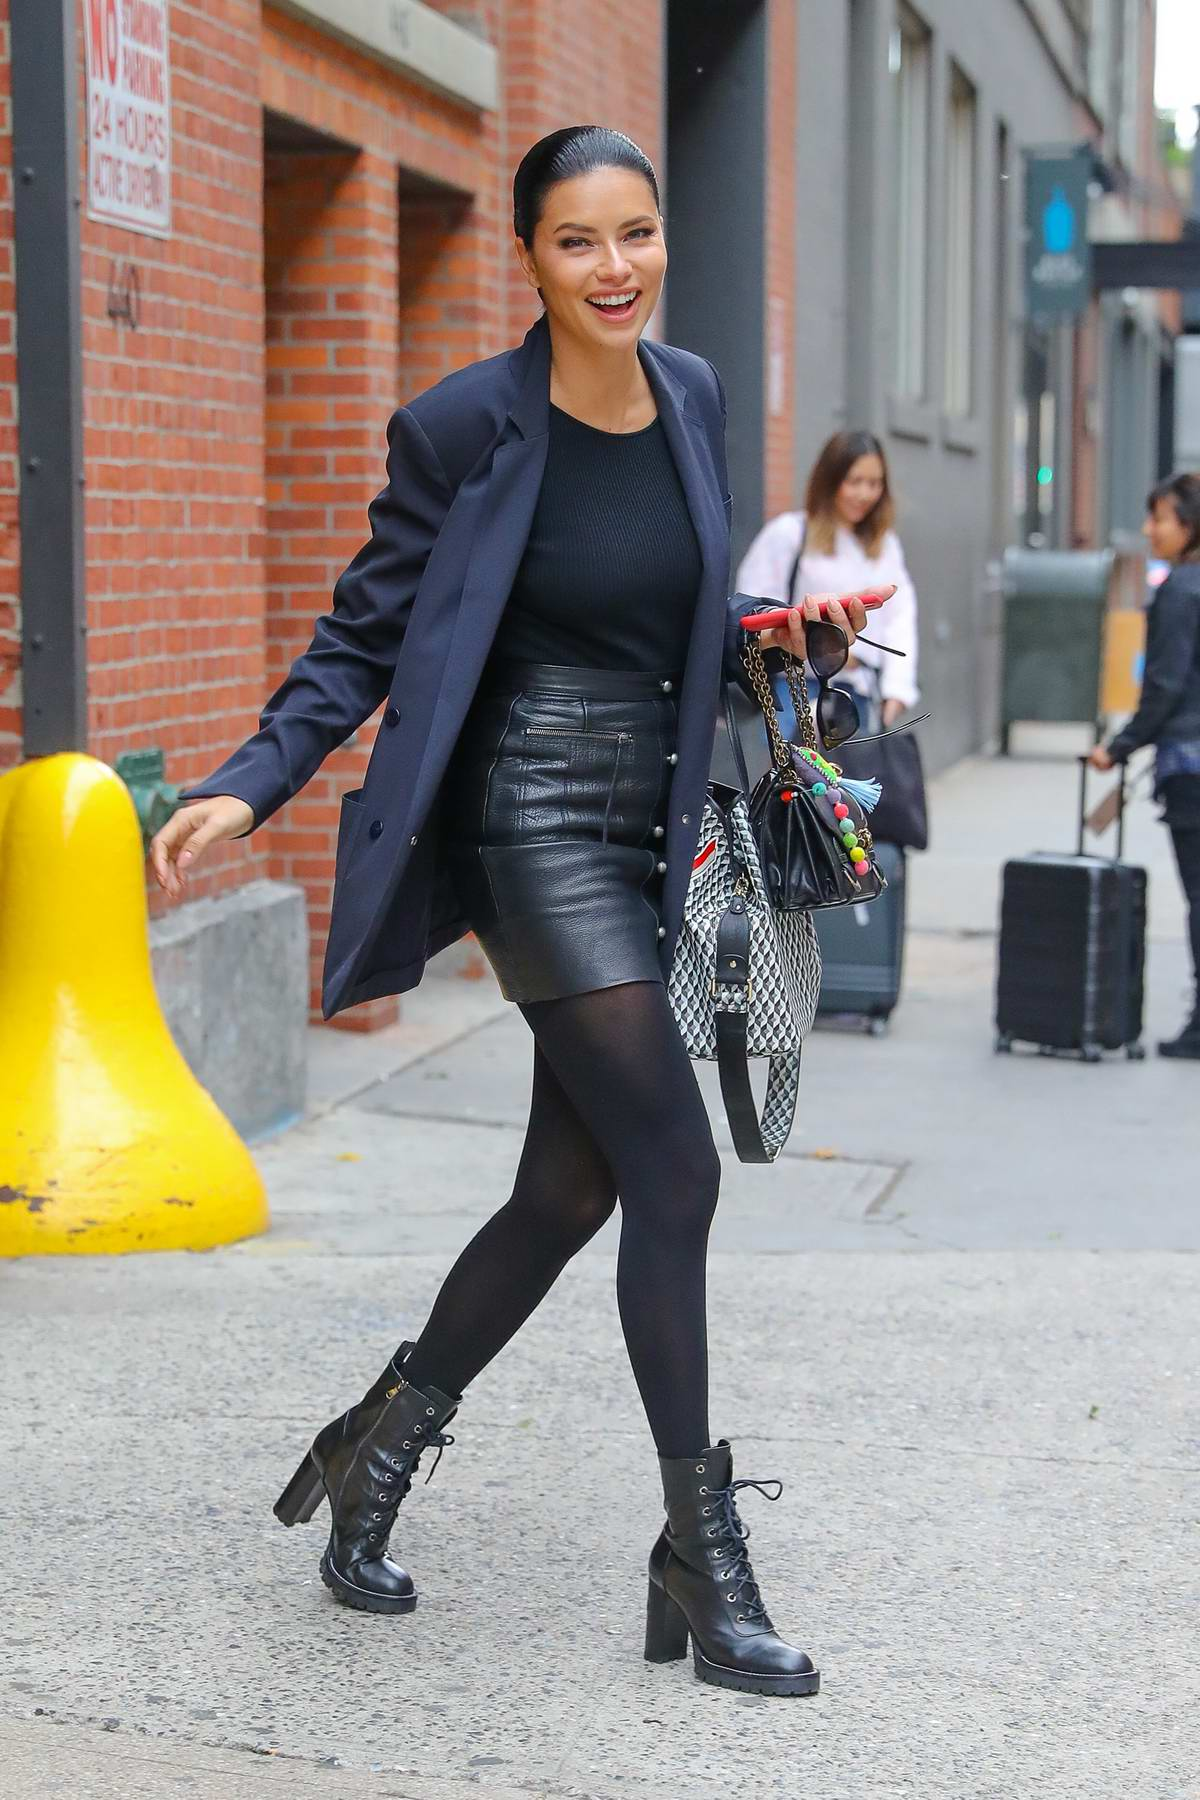 Adriana Lima is all smiles as she leaves after a photoshoot in New York City